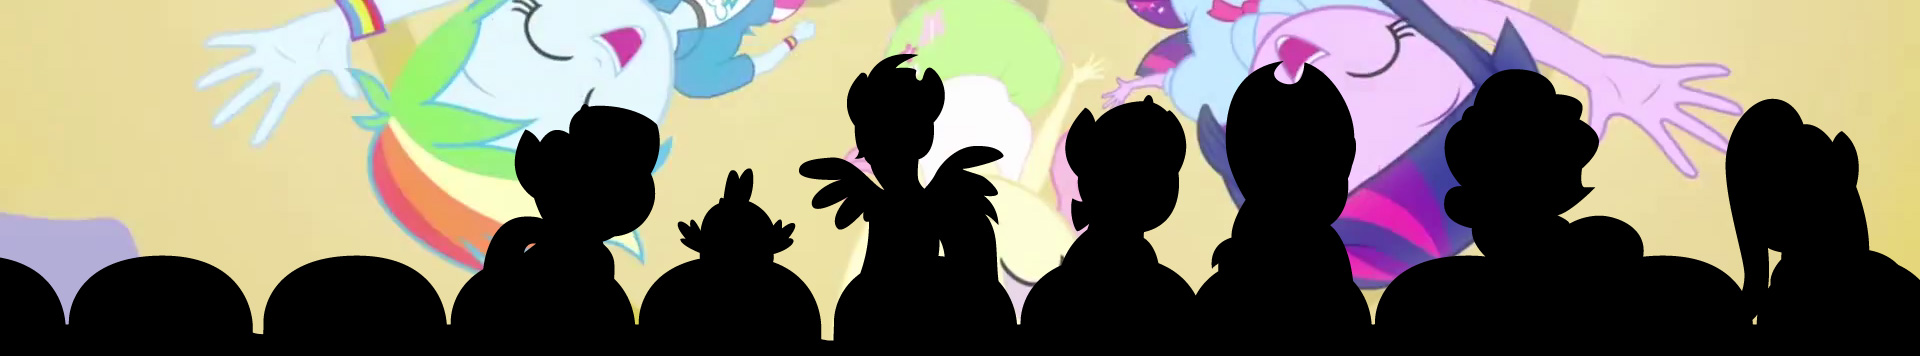 A silhouette of the Mane Six (and Spike) sitting in cinema seats, composited on top of a screenshot from Equestria Girls of the human Mane Six singing and dancing.